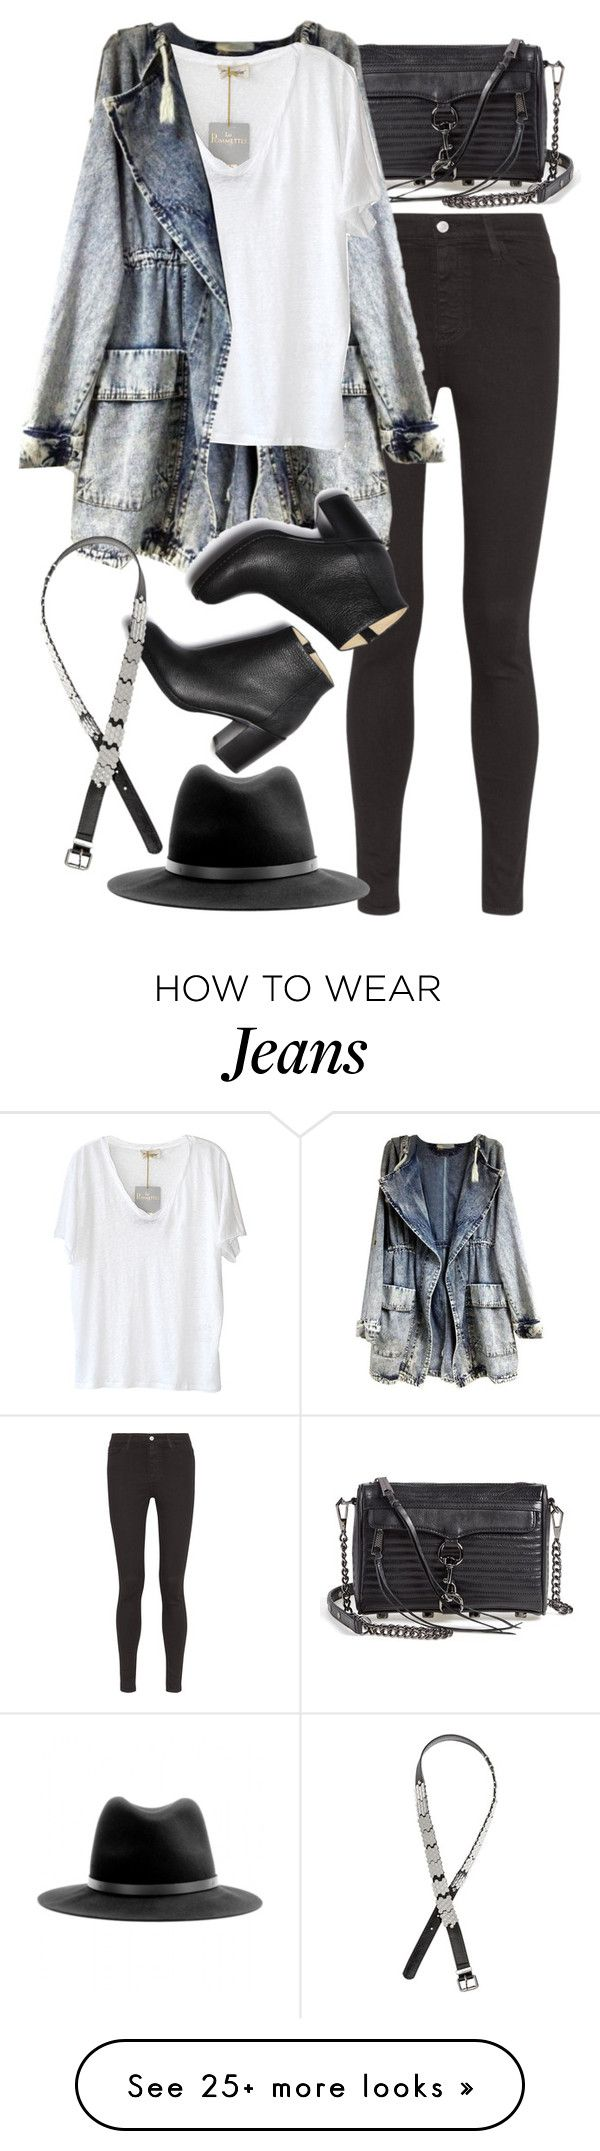 """Untitled #7592"" by nikka-phillips on Polyvore featuring AG Adriano Goldschmied, Rebecca Minkoff, American Vintage, Paul Andrew, H&M and rag & bone"